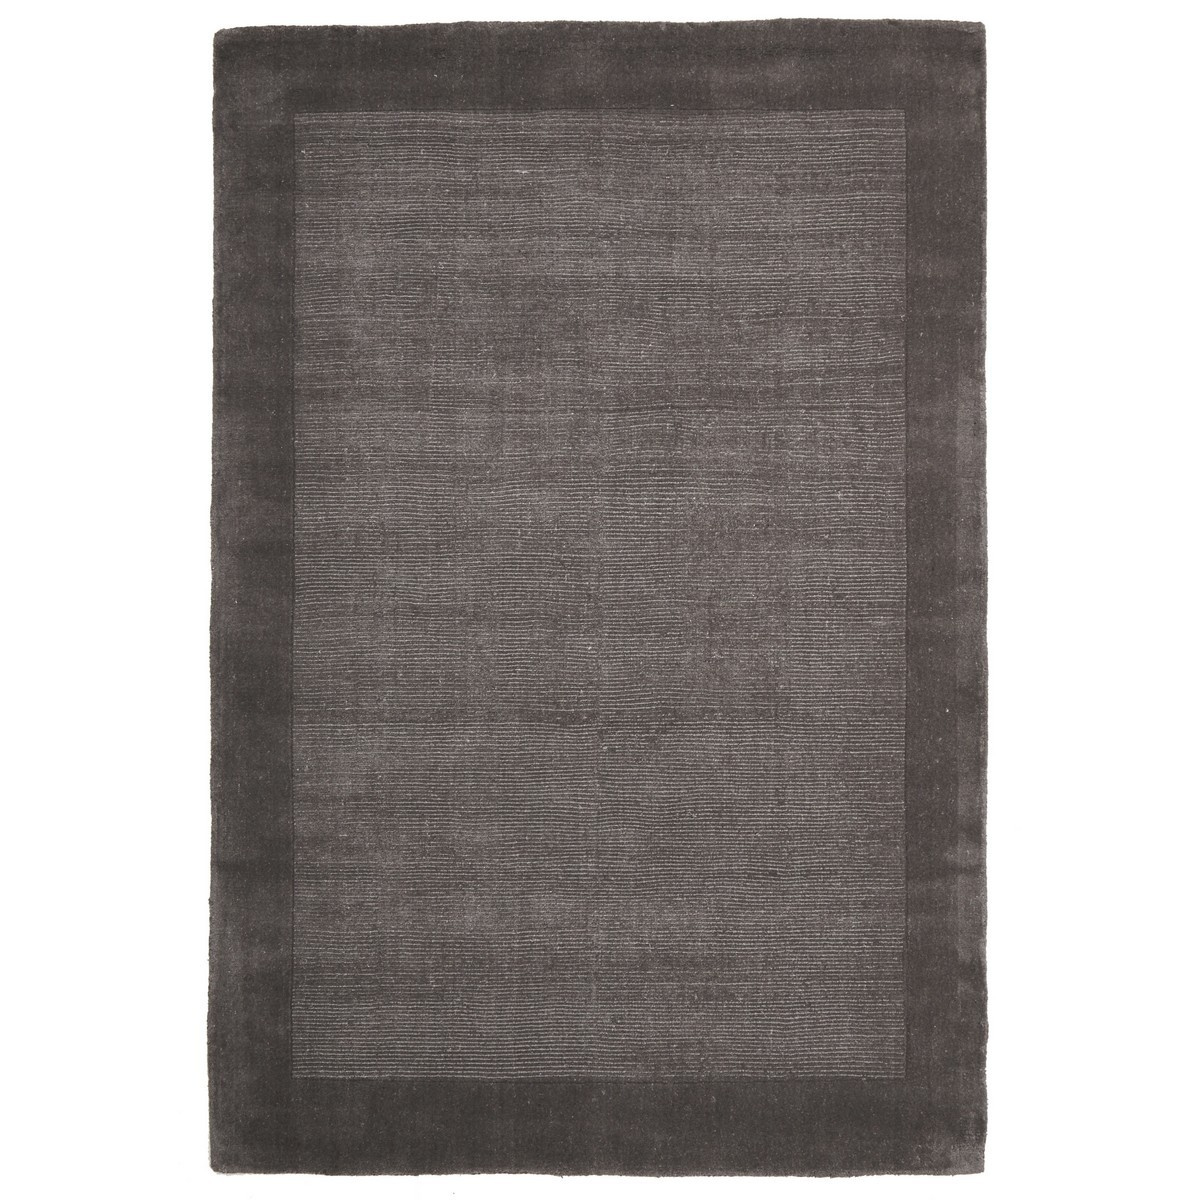 Luxe Hand Tufted Wool Runner Rug, 225x155cm, Grey